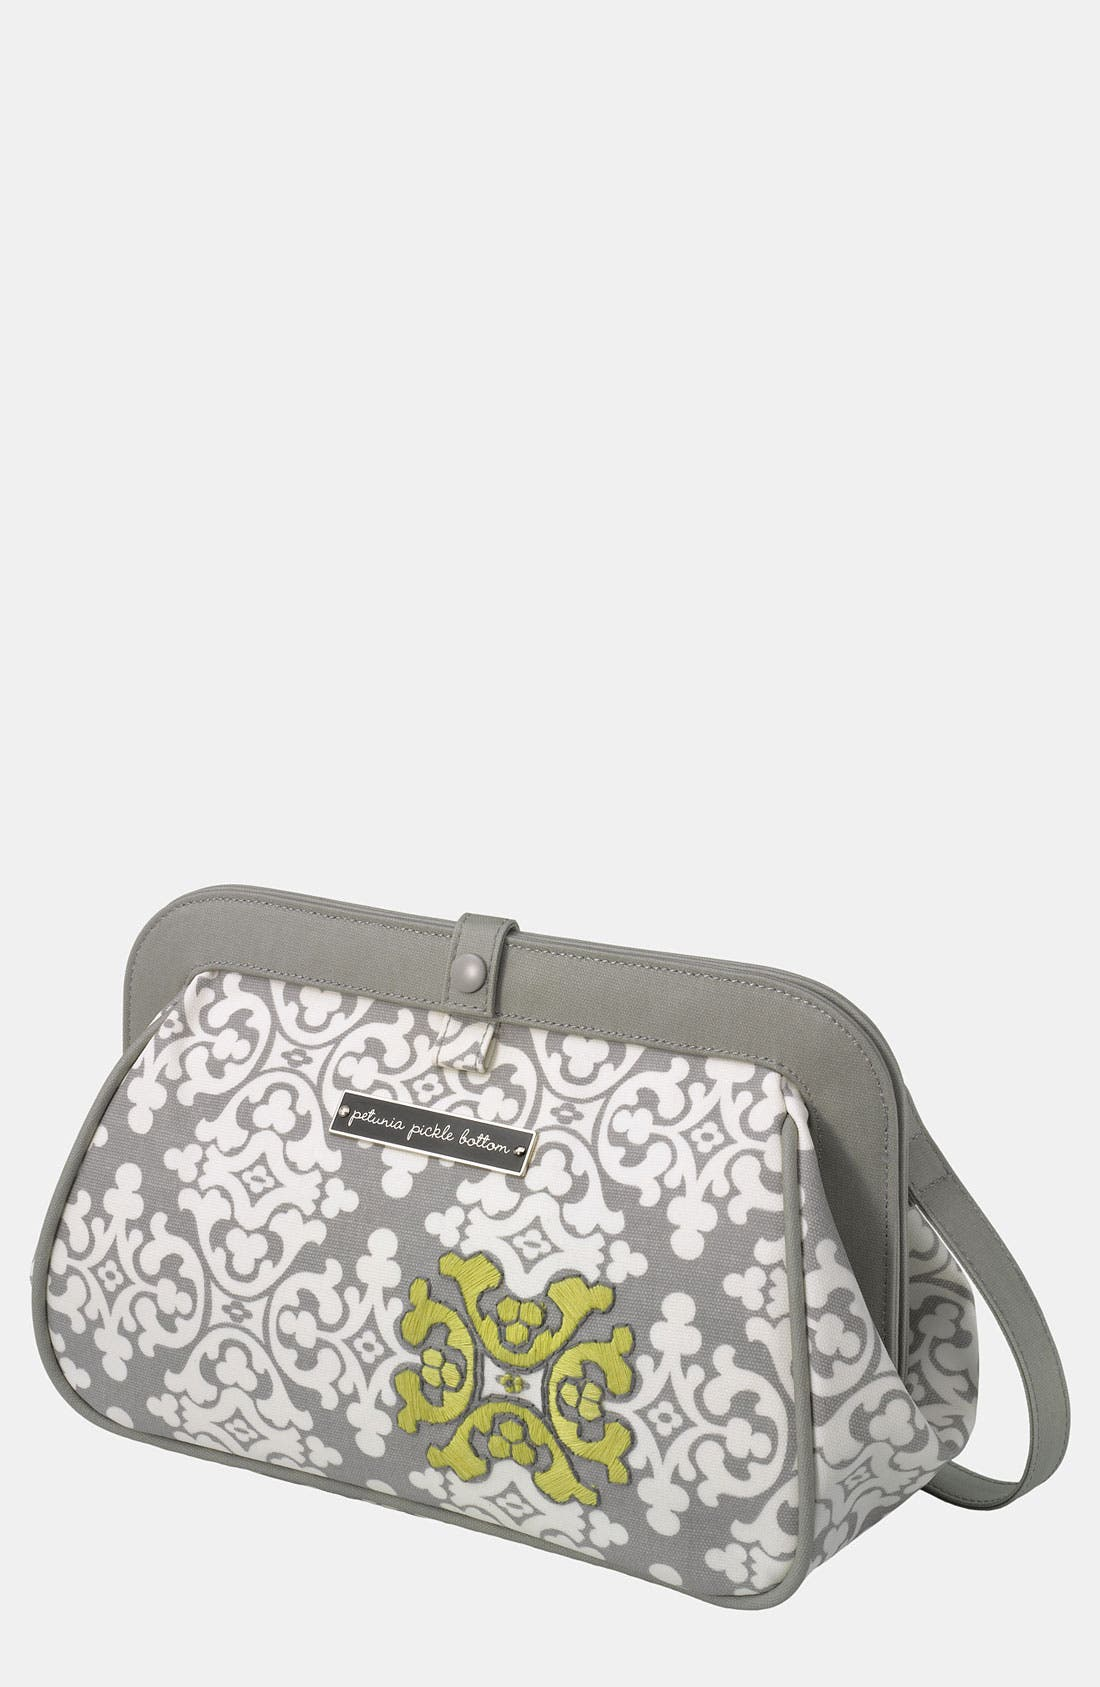 Alternate Image 1 Selected - Petunia Pickle Bottom 'Crosstown' Glazed Clutch Diaper Bag